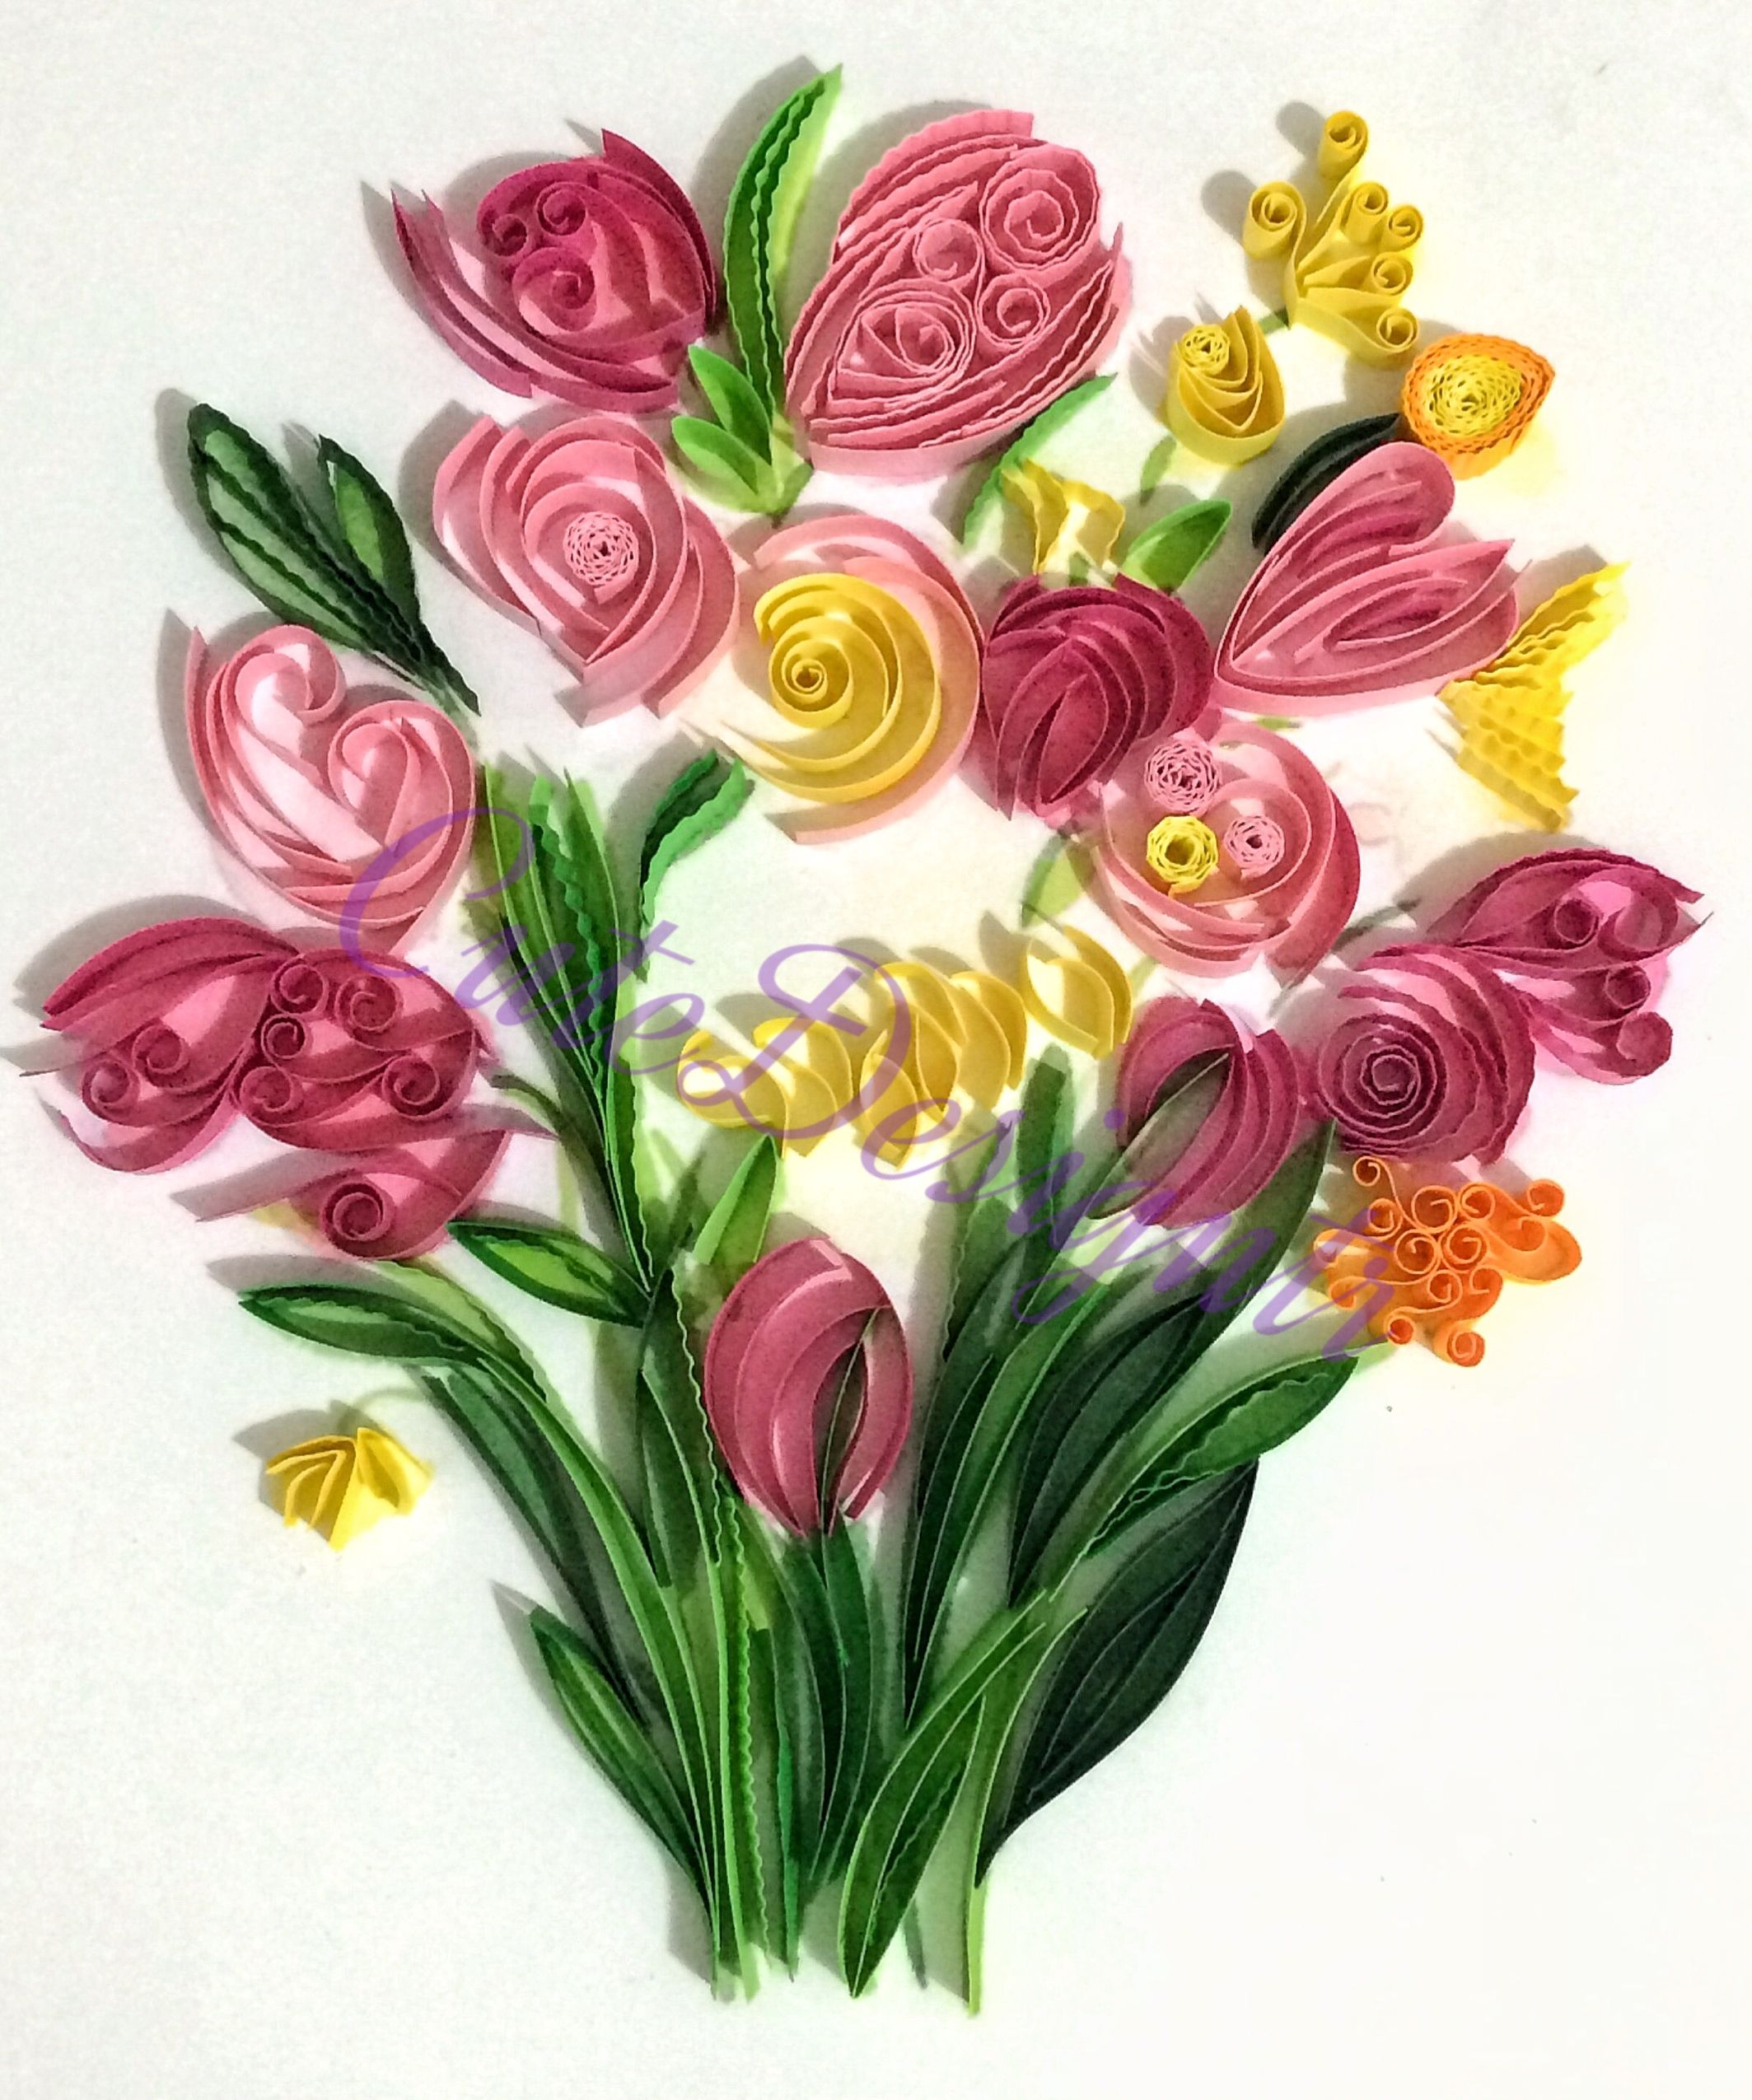 Cutedesigntr Instagram Paperquilling Flower Flowers Pinterest